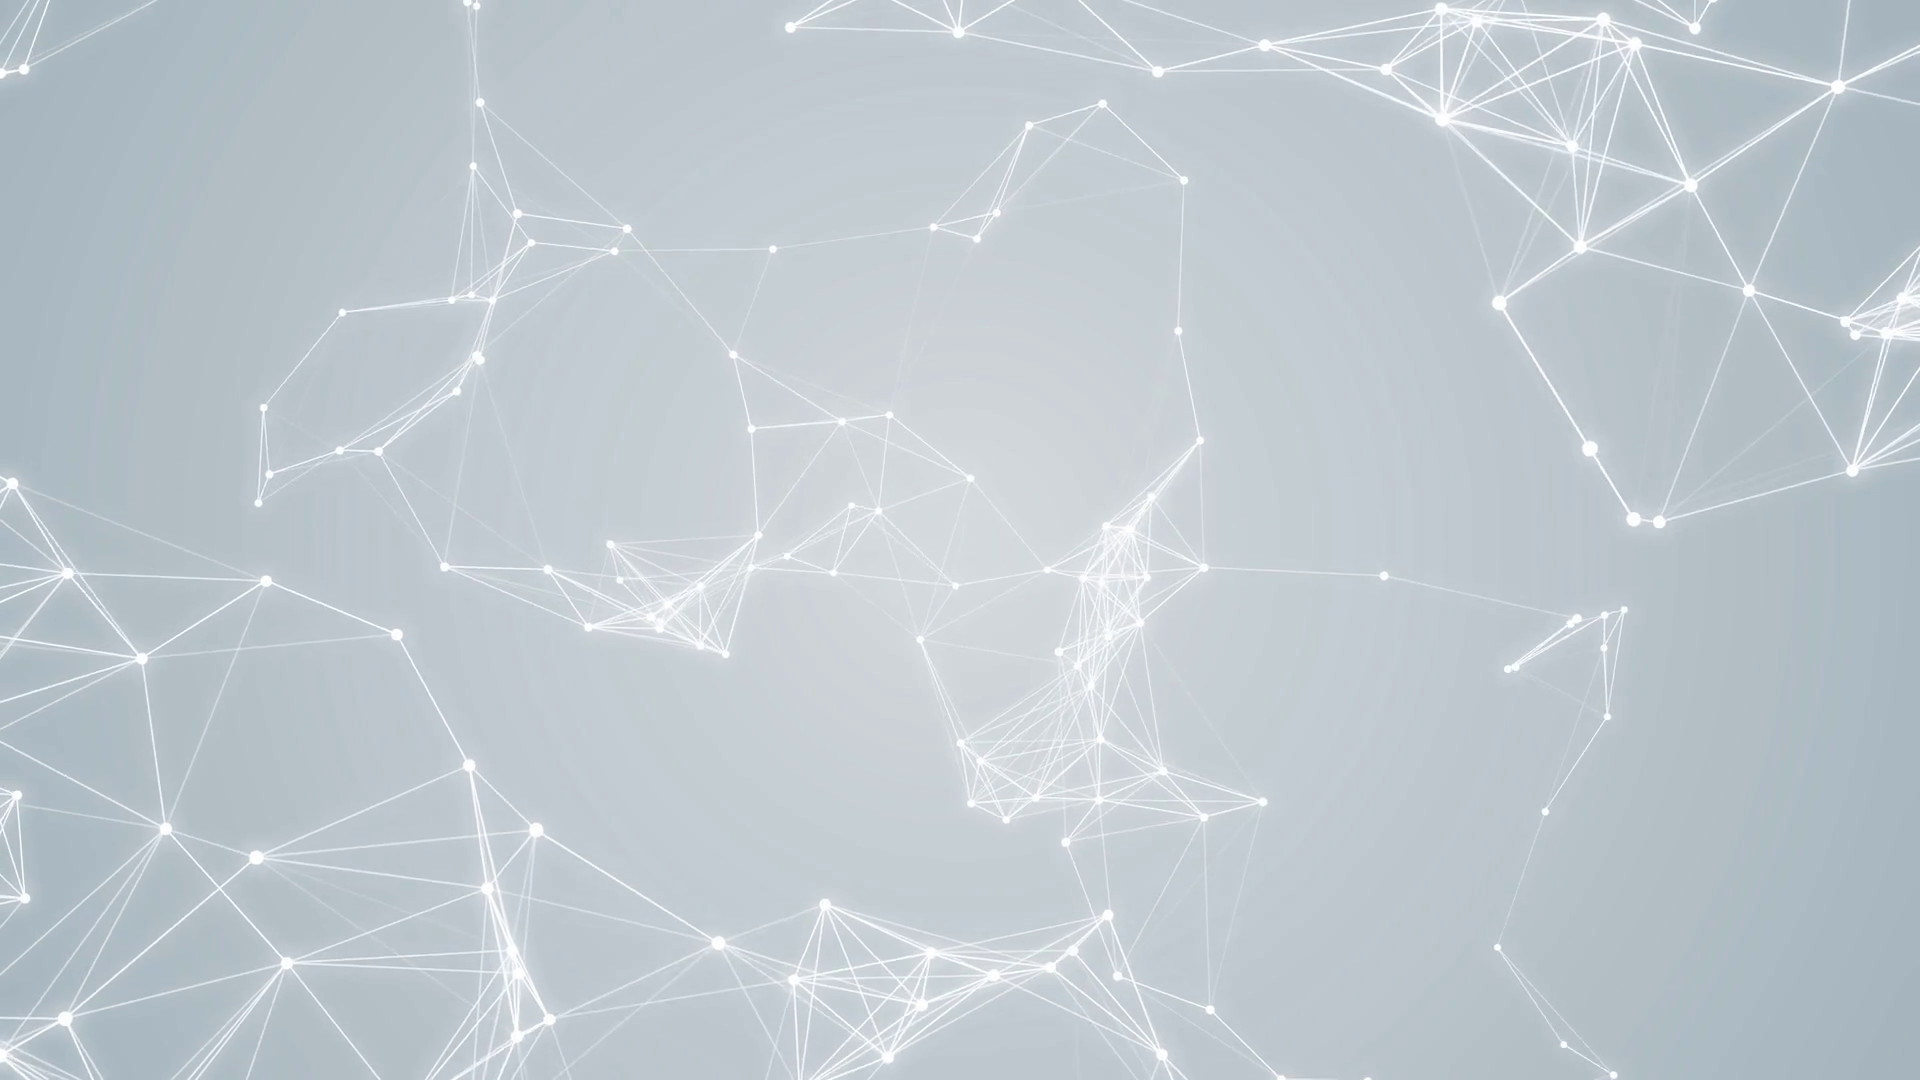 1920x1080 plexus abstract network white technology science background loop 06_bxyfy  hbl_thumbnail full01 1 1